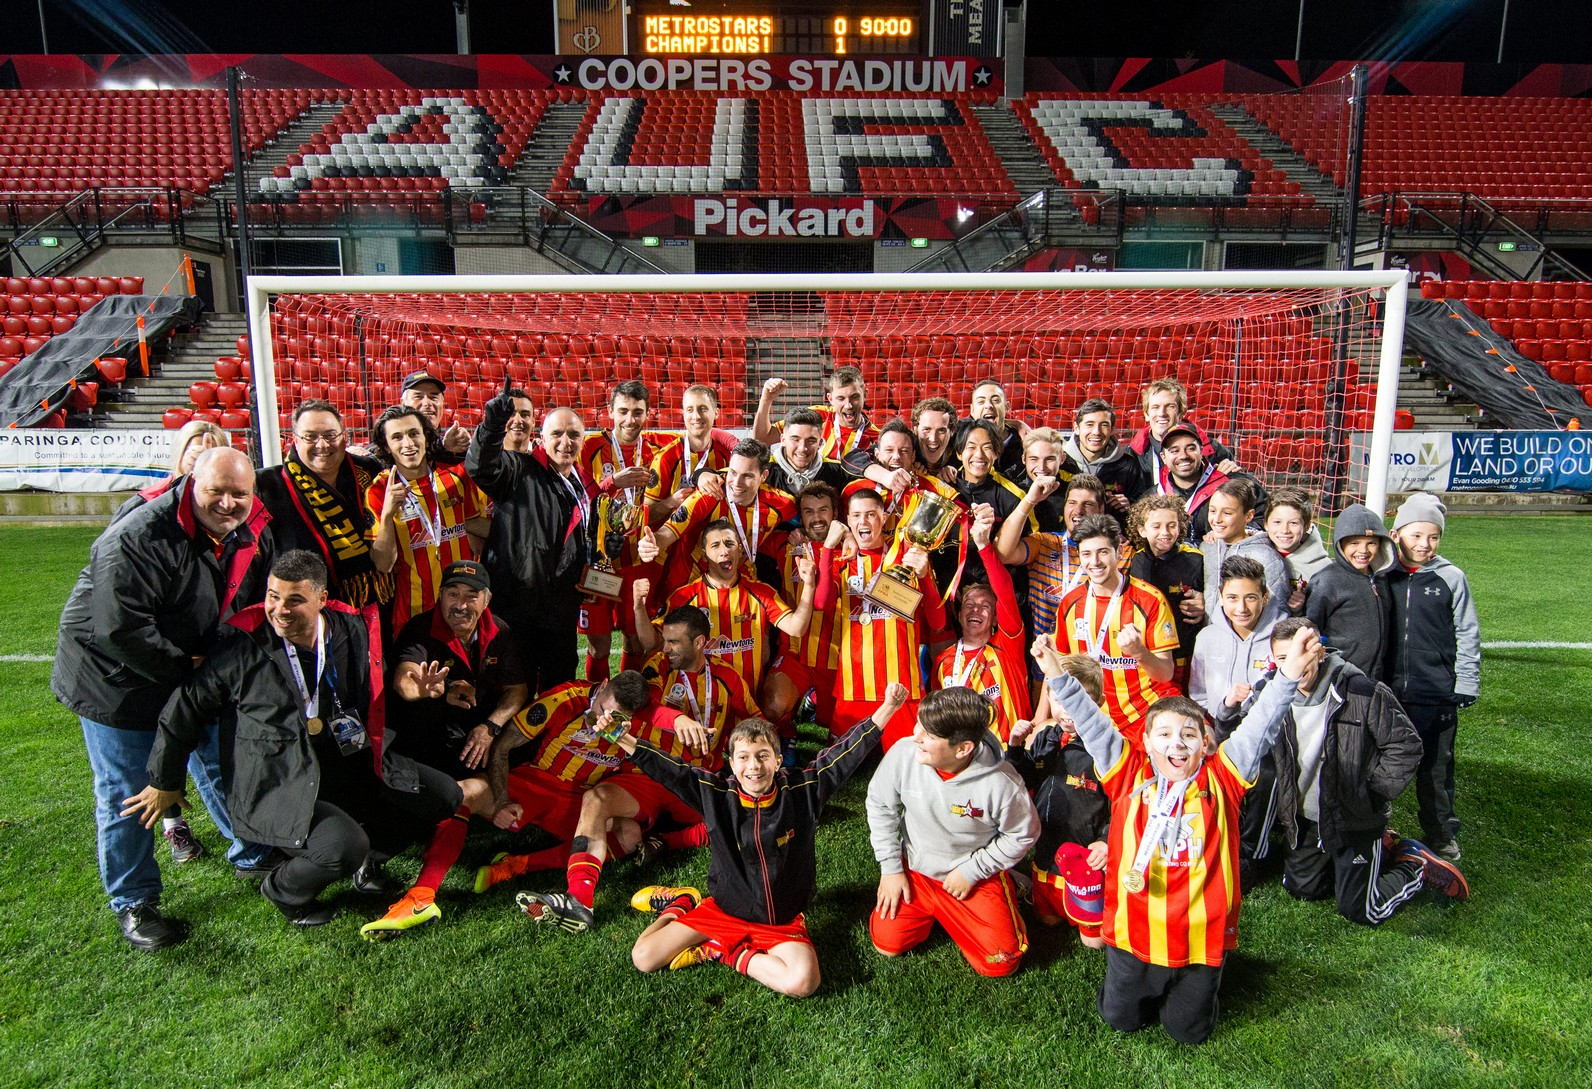 2016 Federation Cup Champions